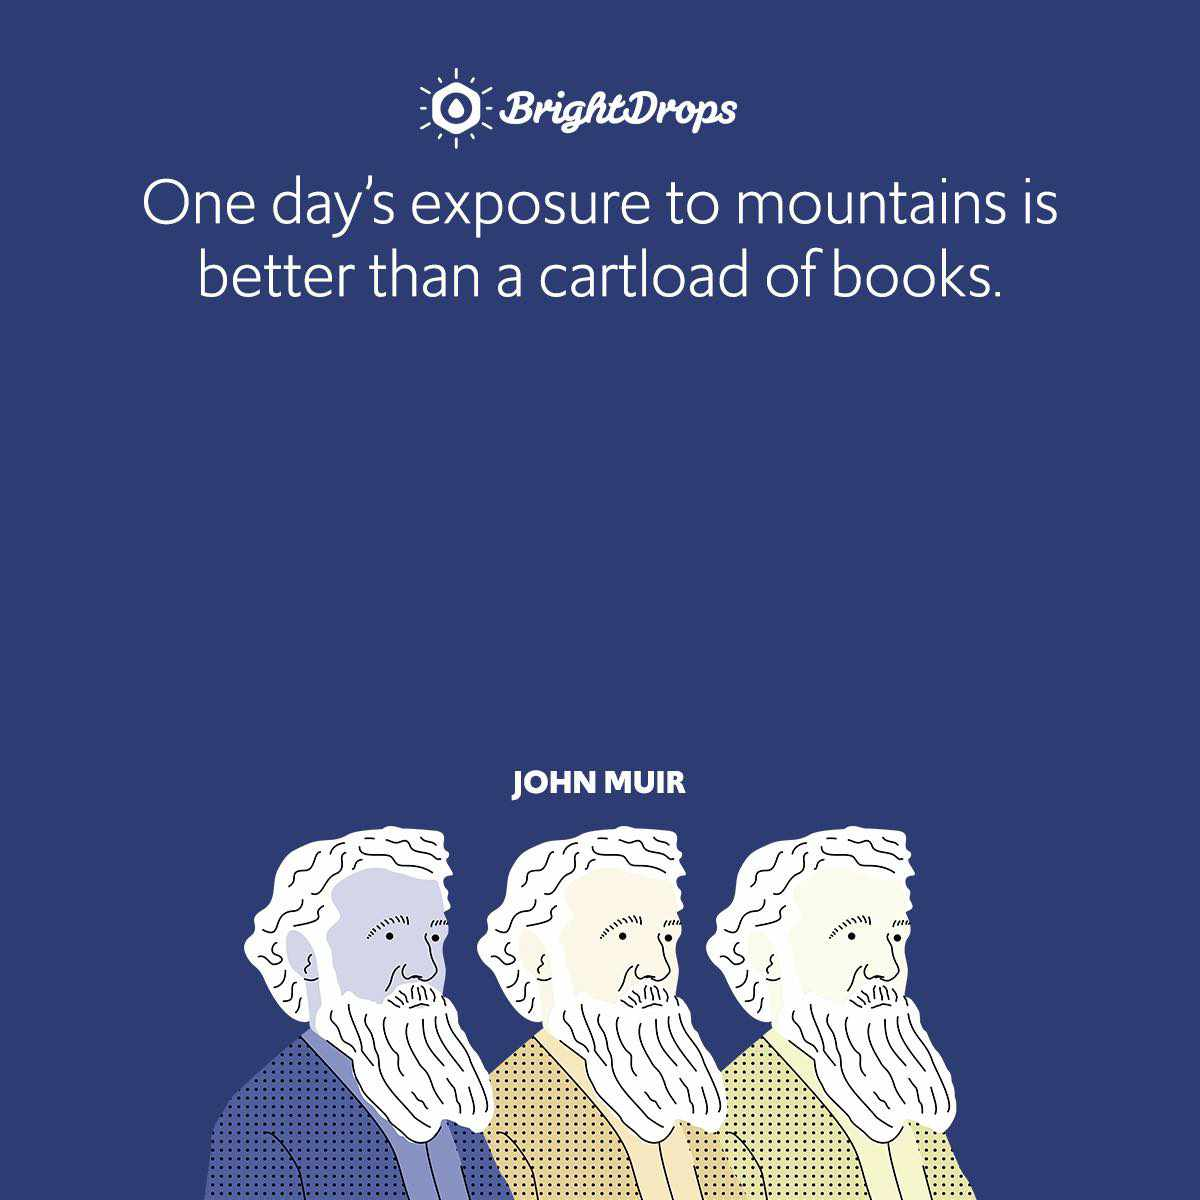 One day's exposure to mountains is better than a cartload of books.